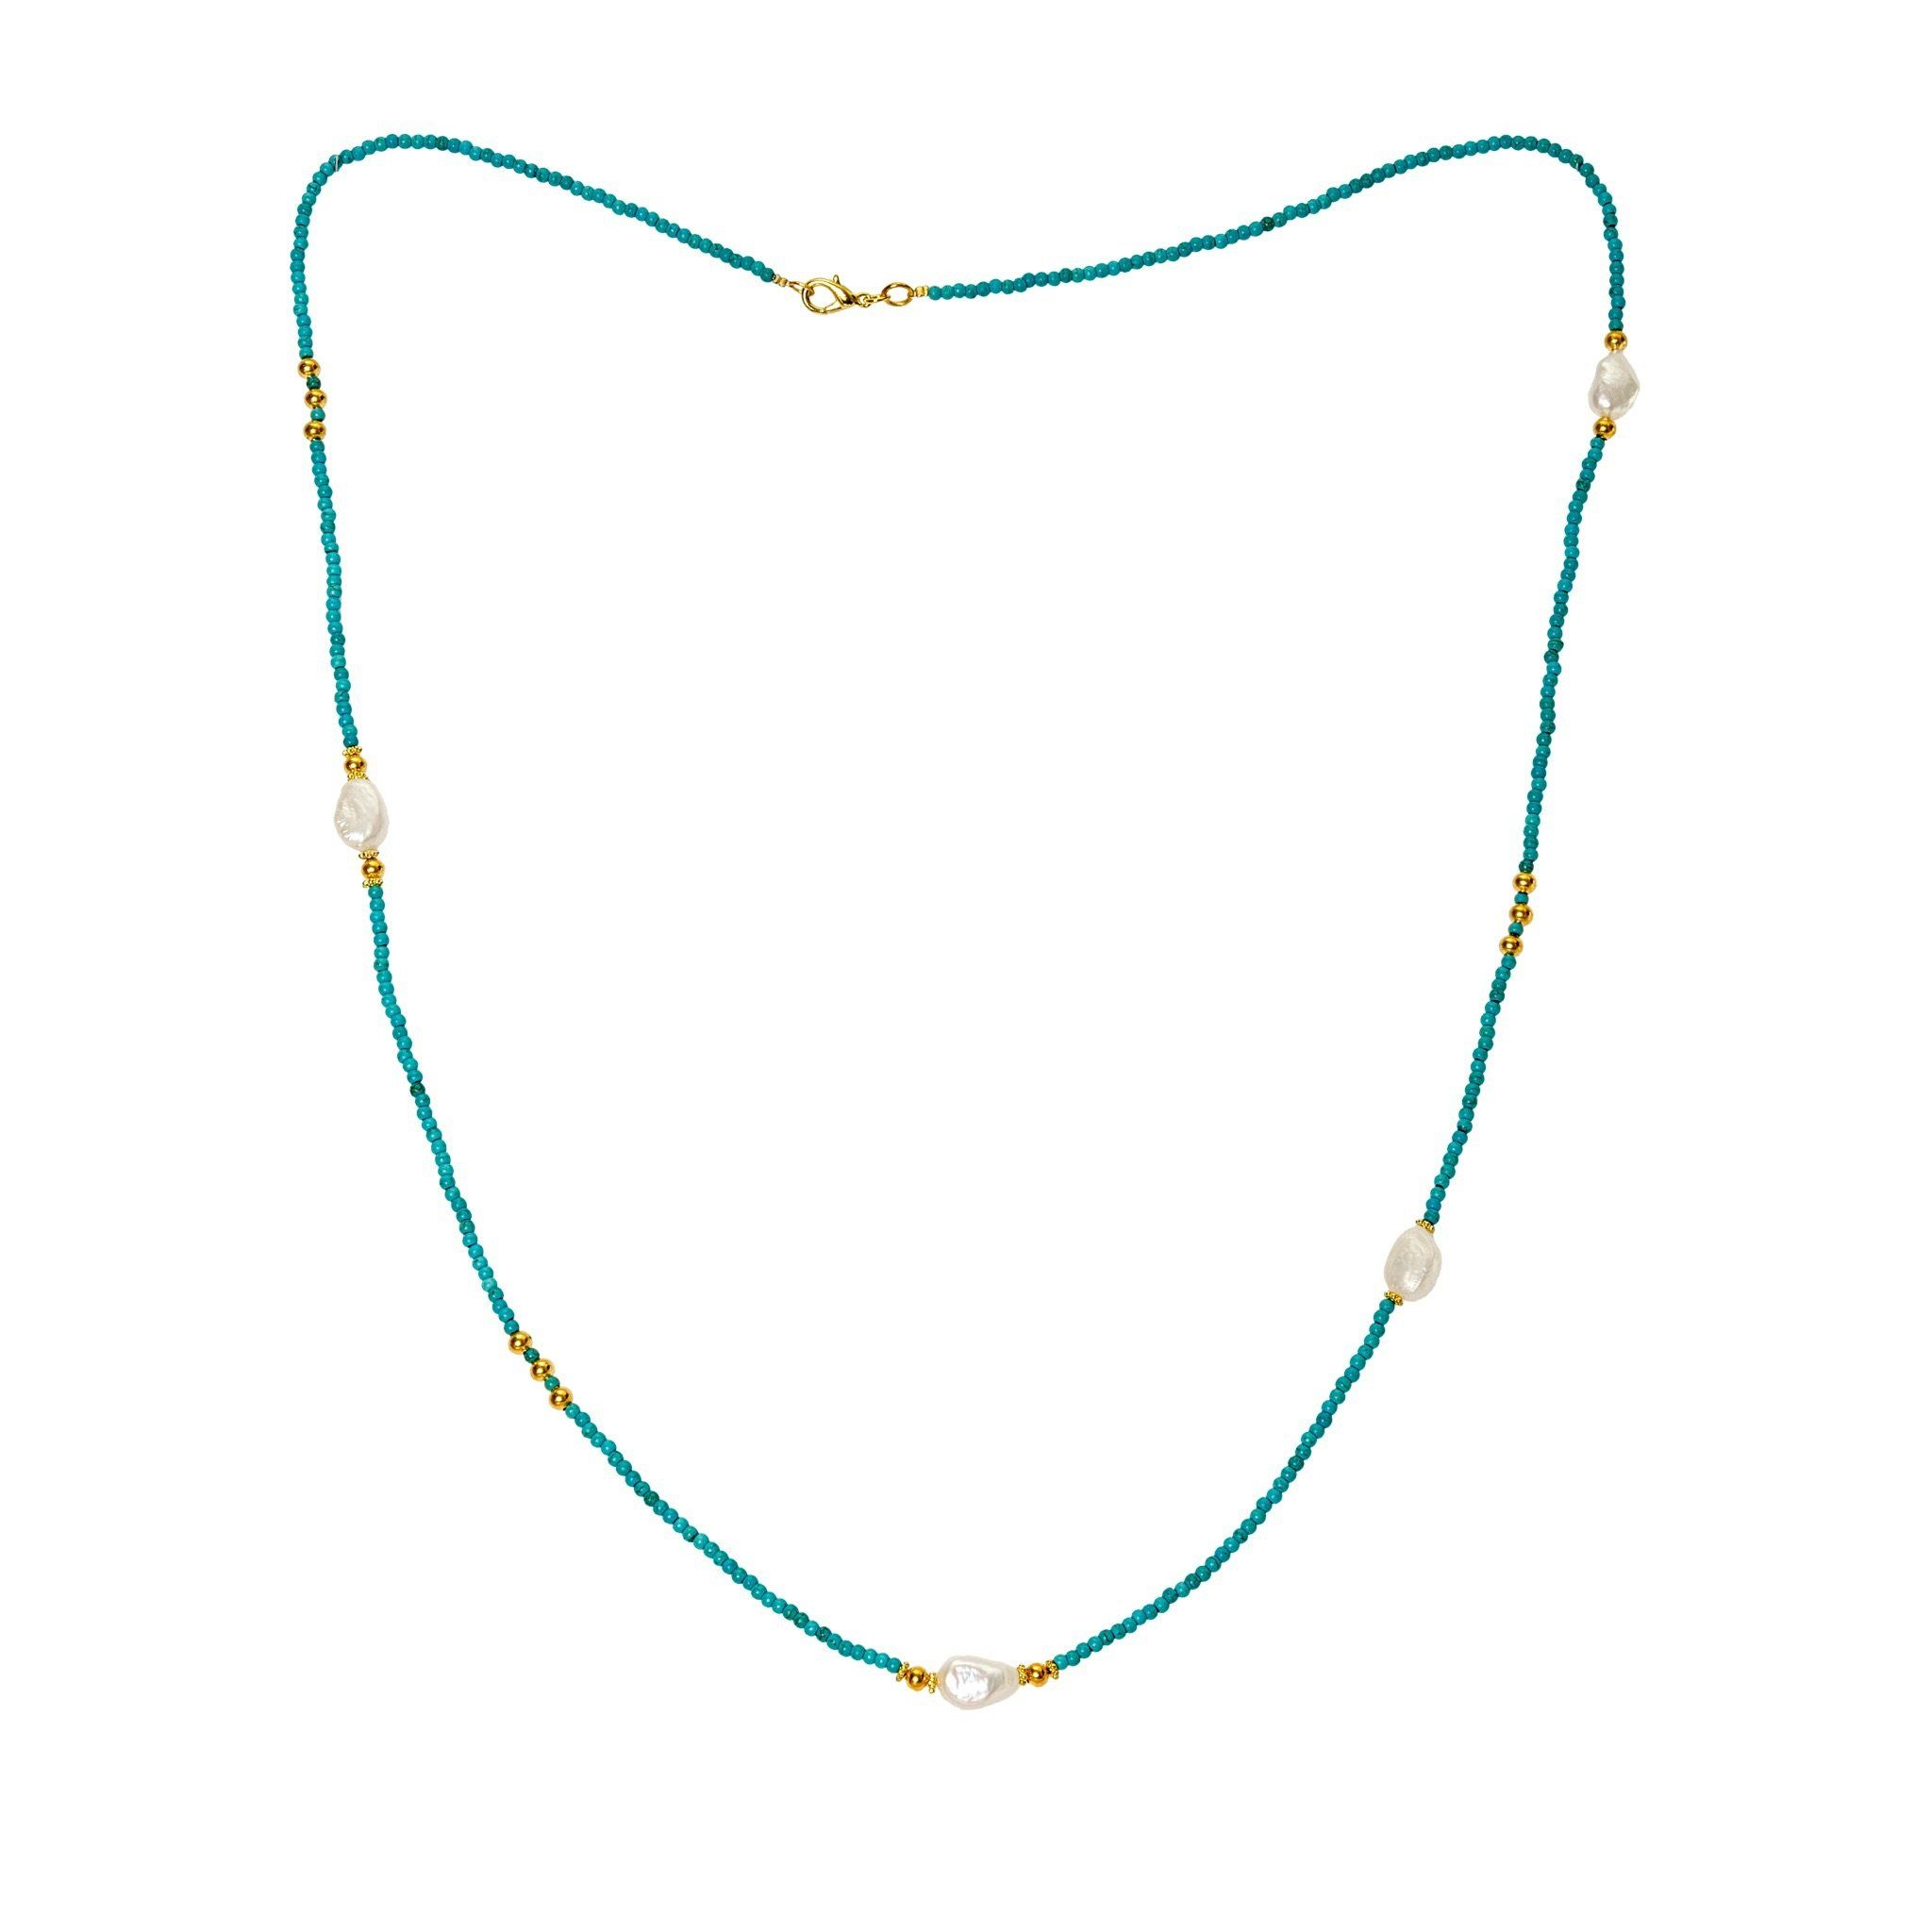 KIMUKA pearls and turquoise necklace - MadamSiam